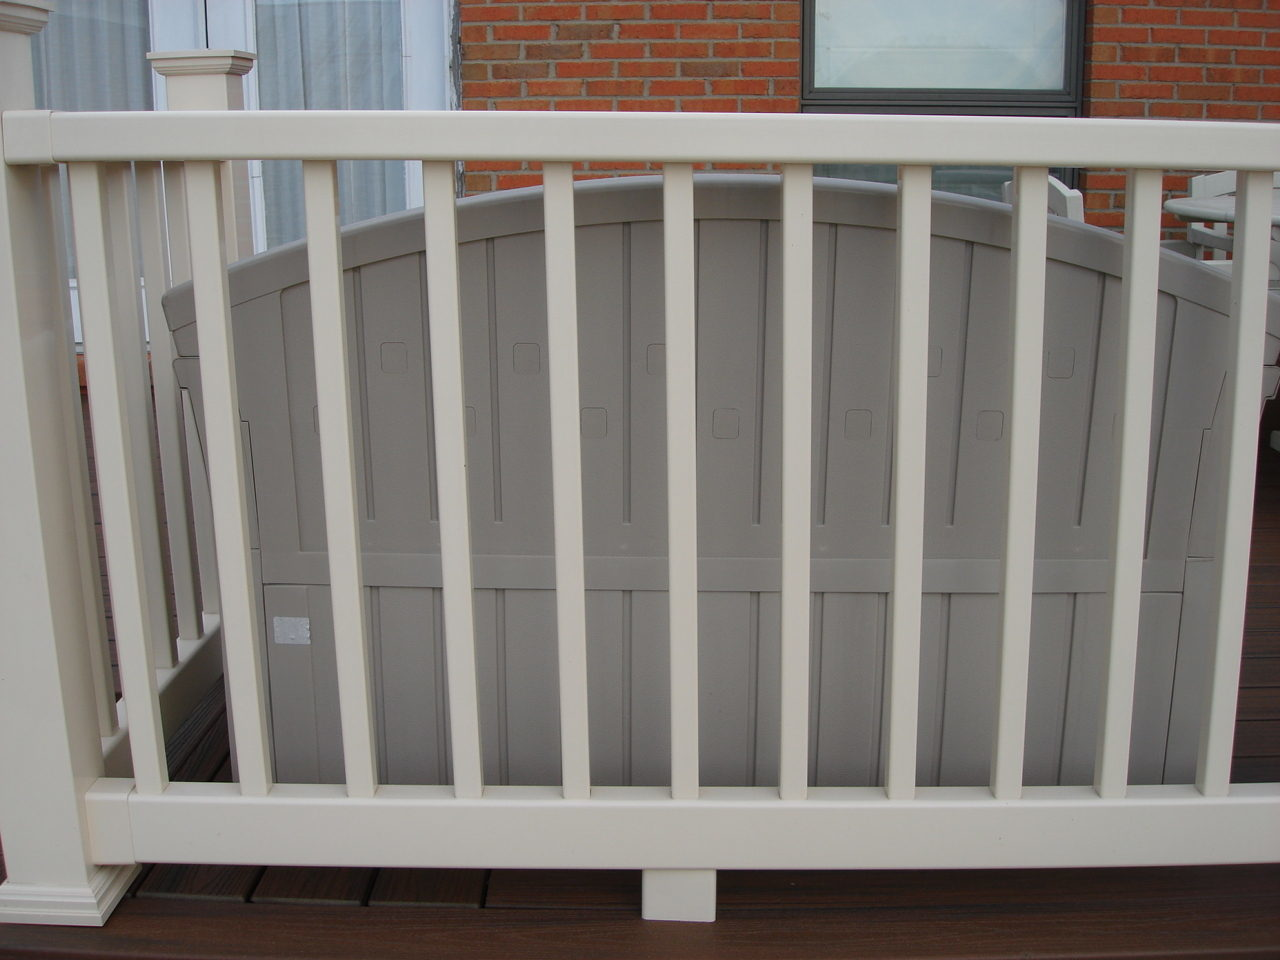 Pin trex decking complaints image search results on pinterest for Composite decking reviews